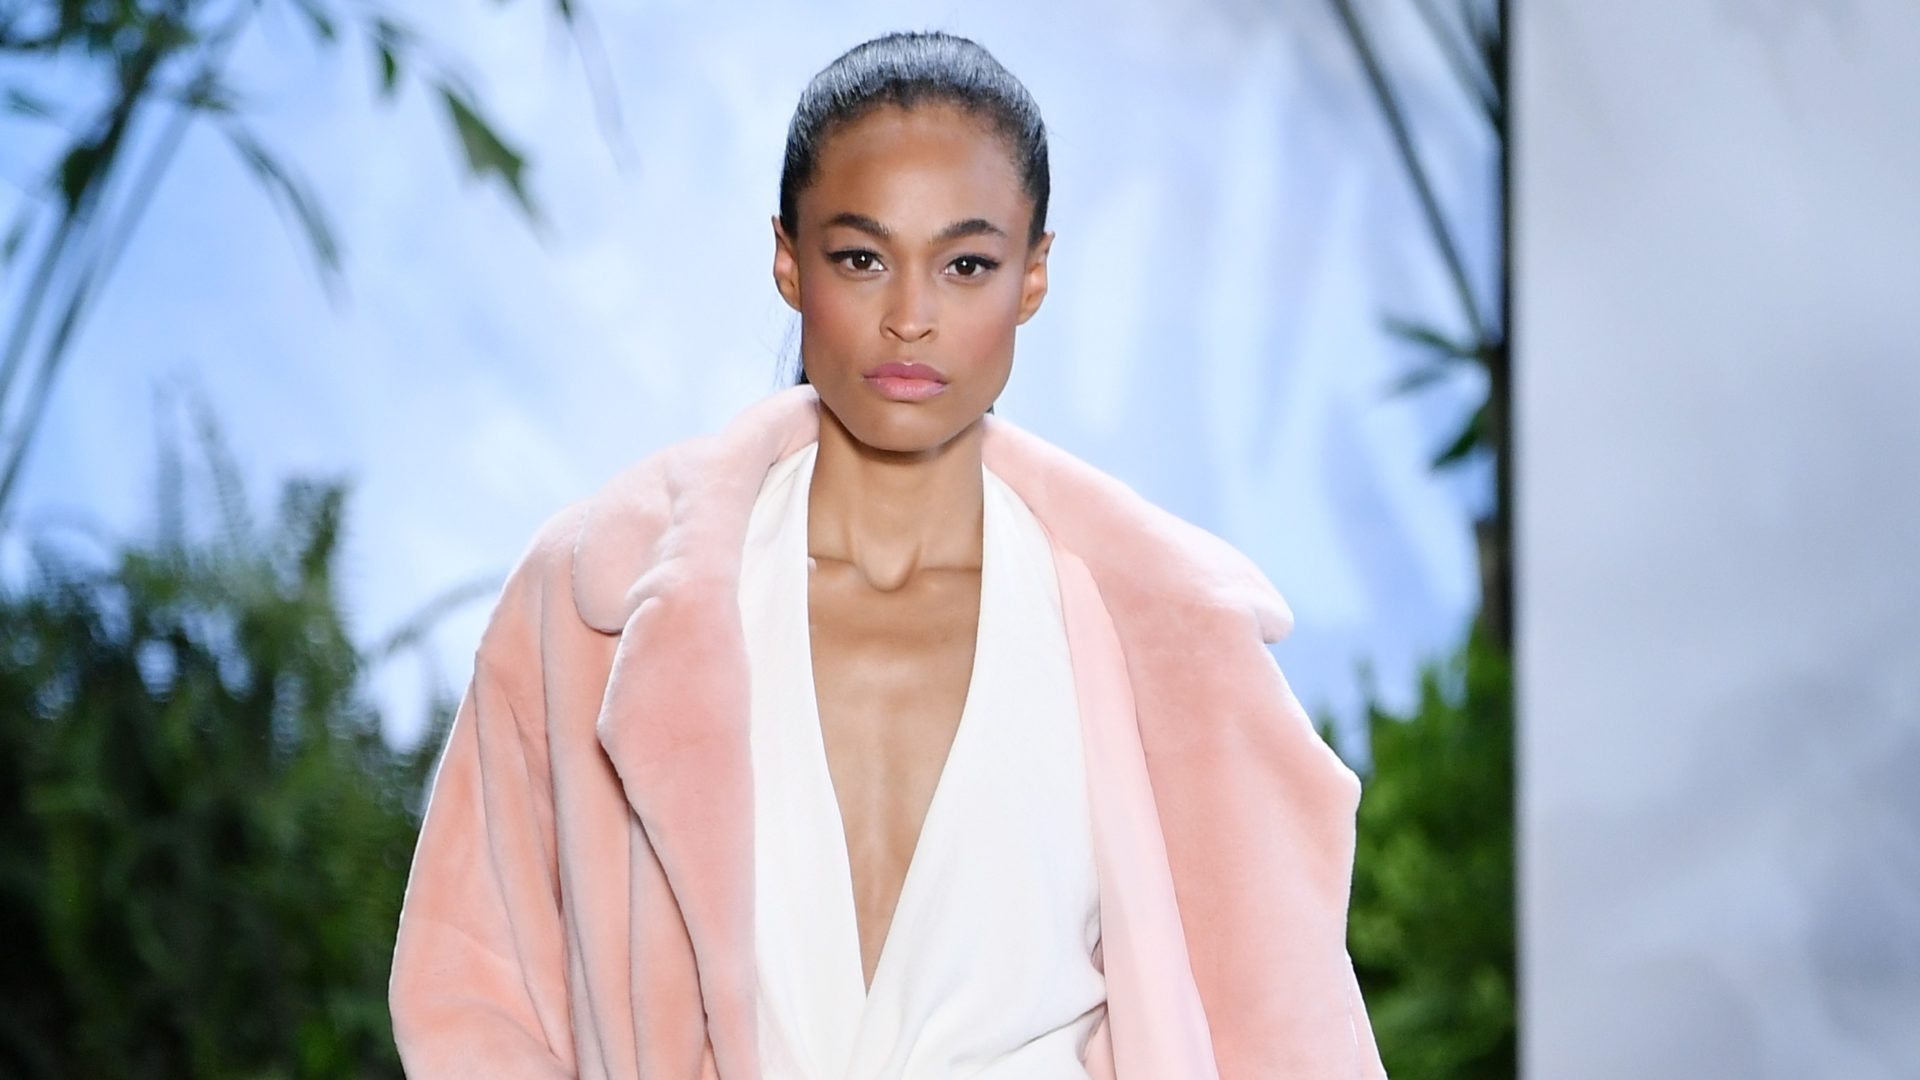 NYFW: Dennis Basso Presents A Sleek Spring/Summer 2020 Collection